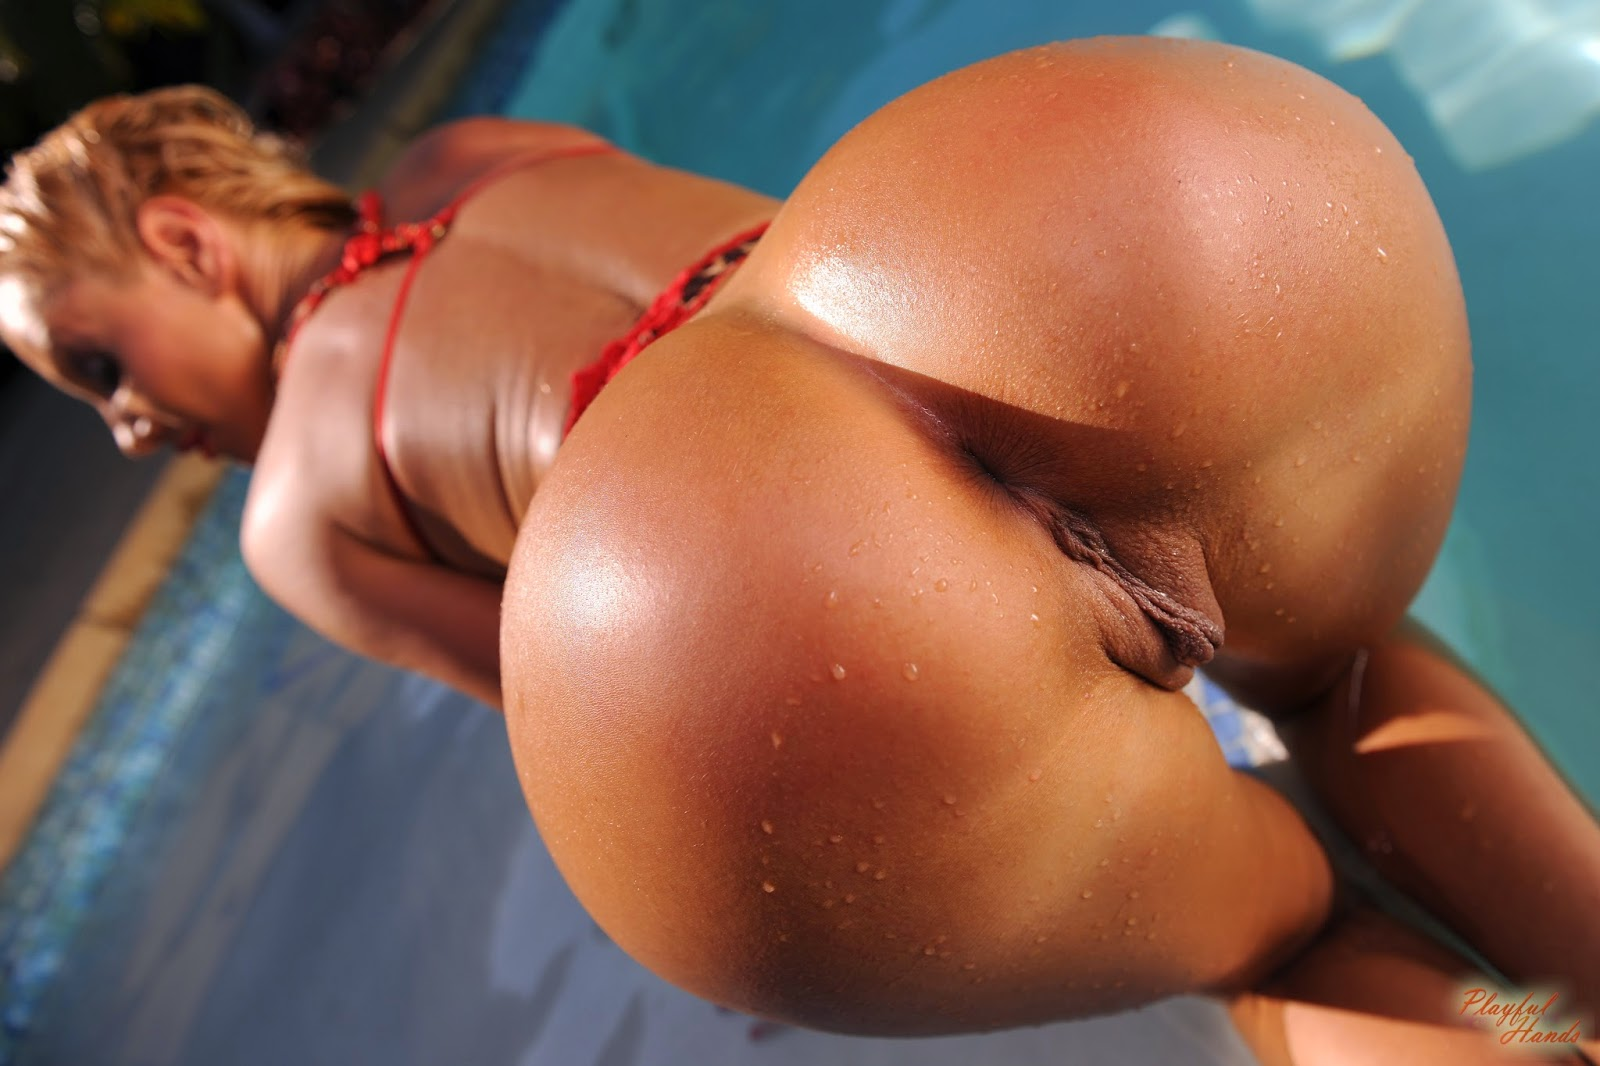 hot xxx booty ccv butt ass Naked  big  mix